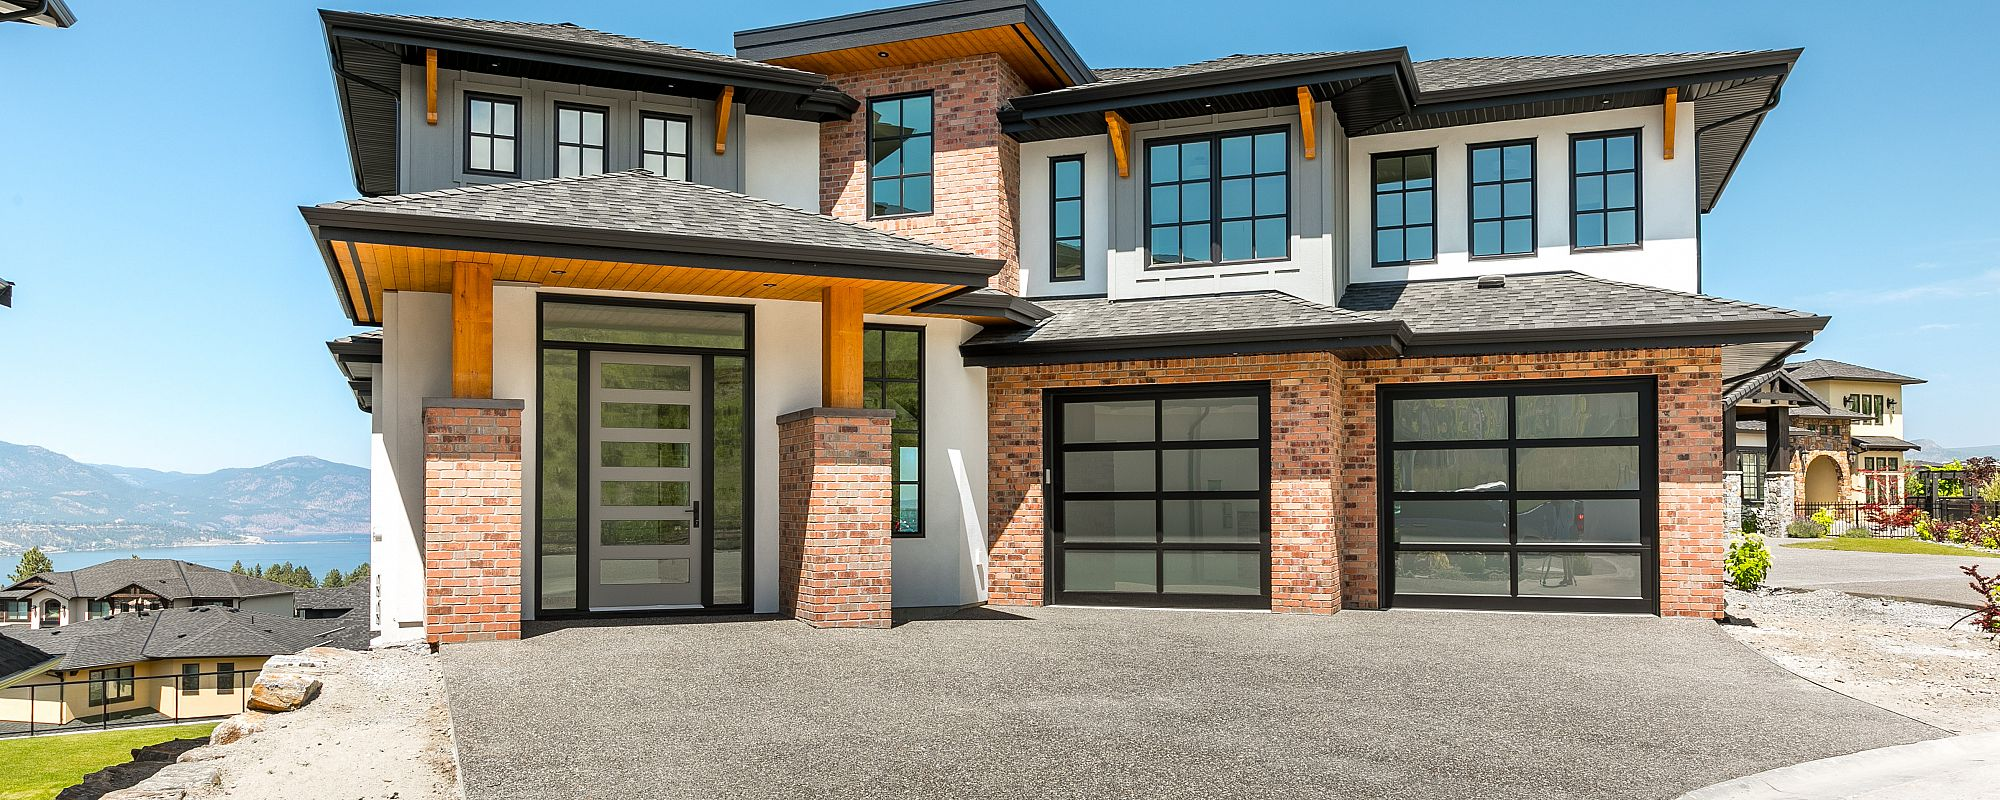 Stark Homes front view of custom home build with black frame and glass panelling